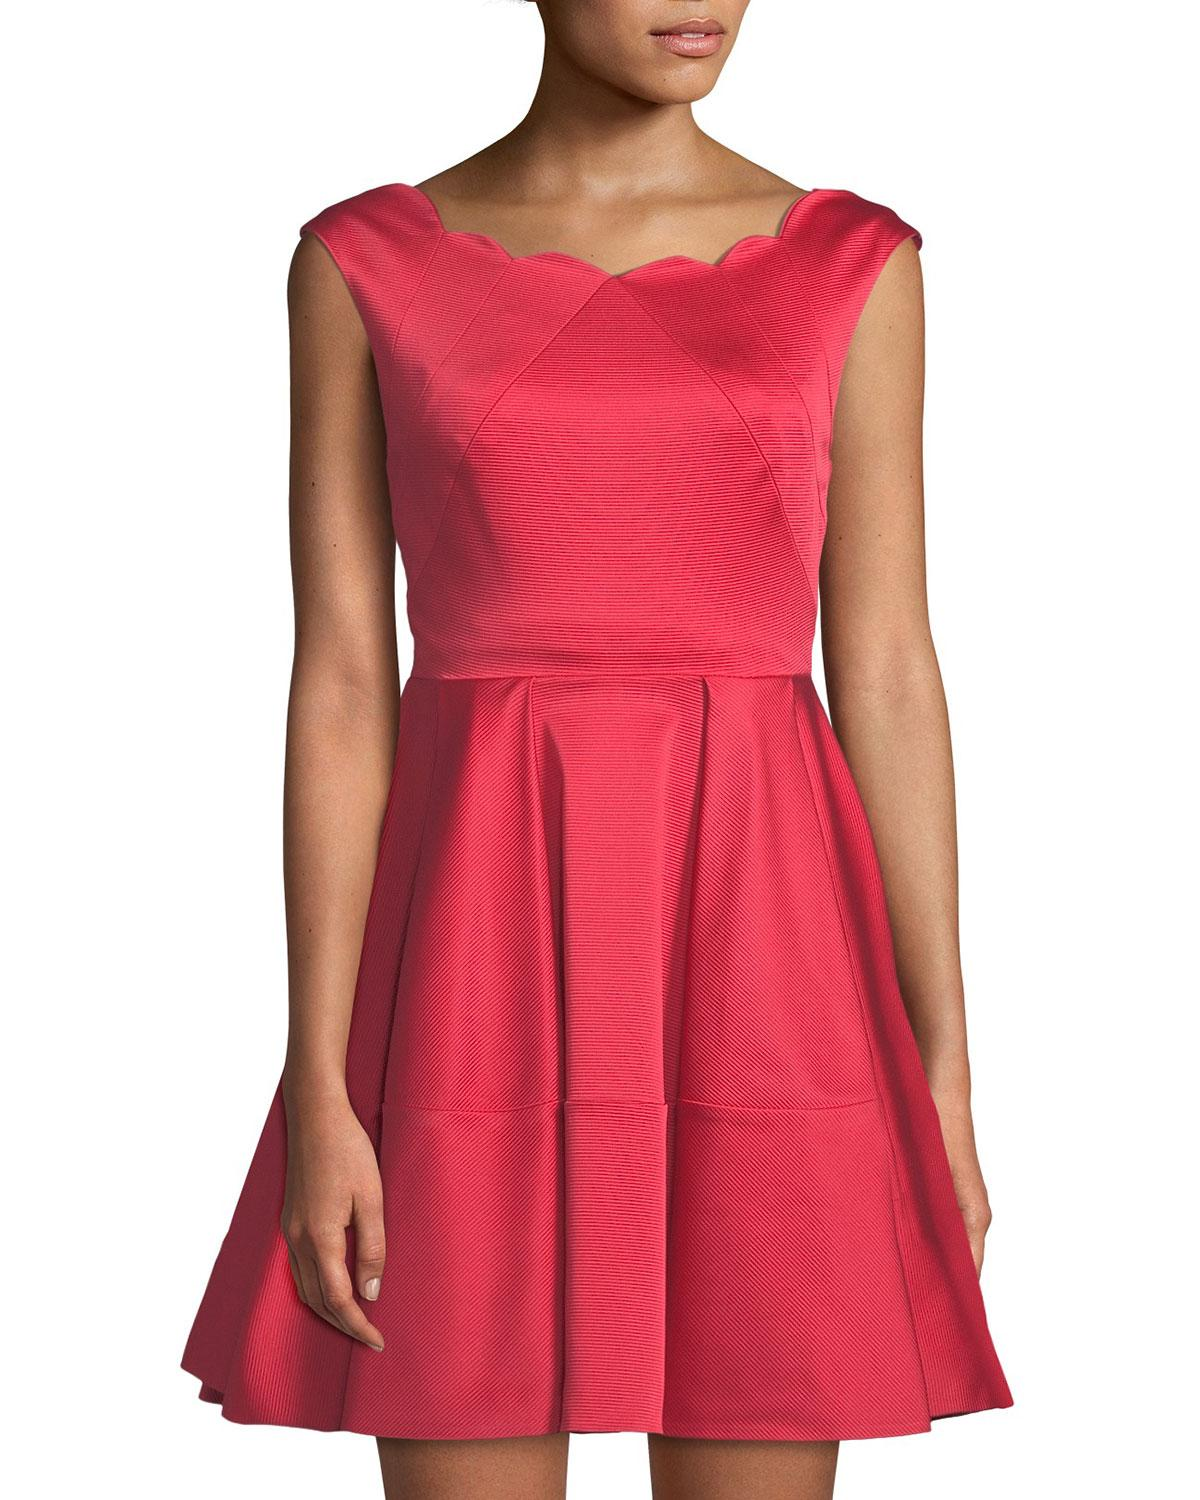 Zac Posen Cordelia Scalloped Fit & Flare Gown In Coral